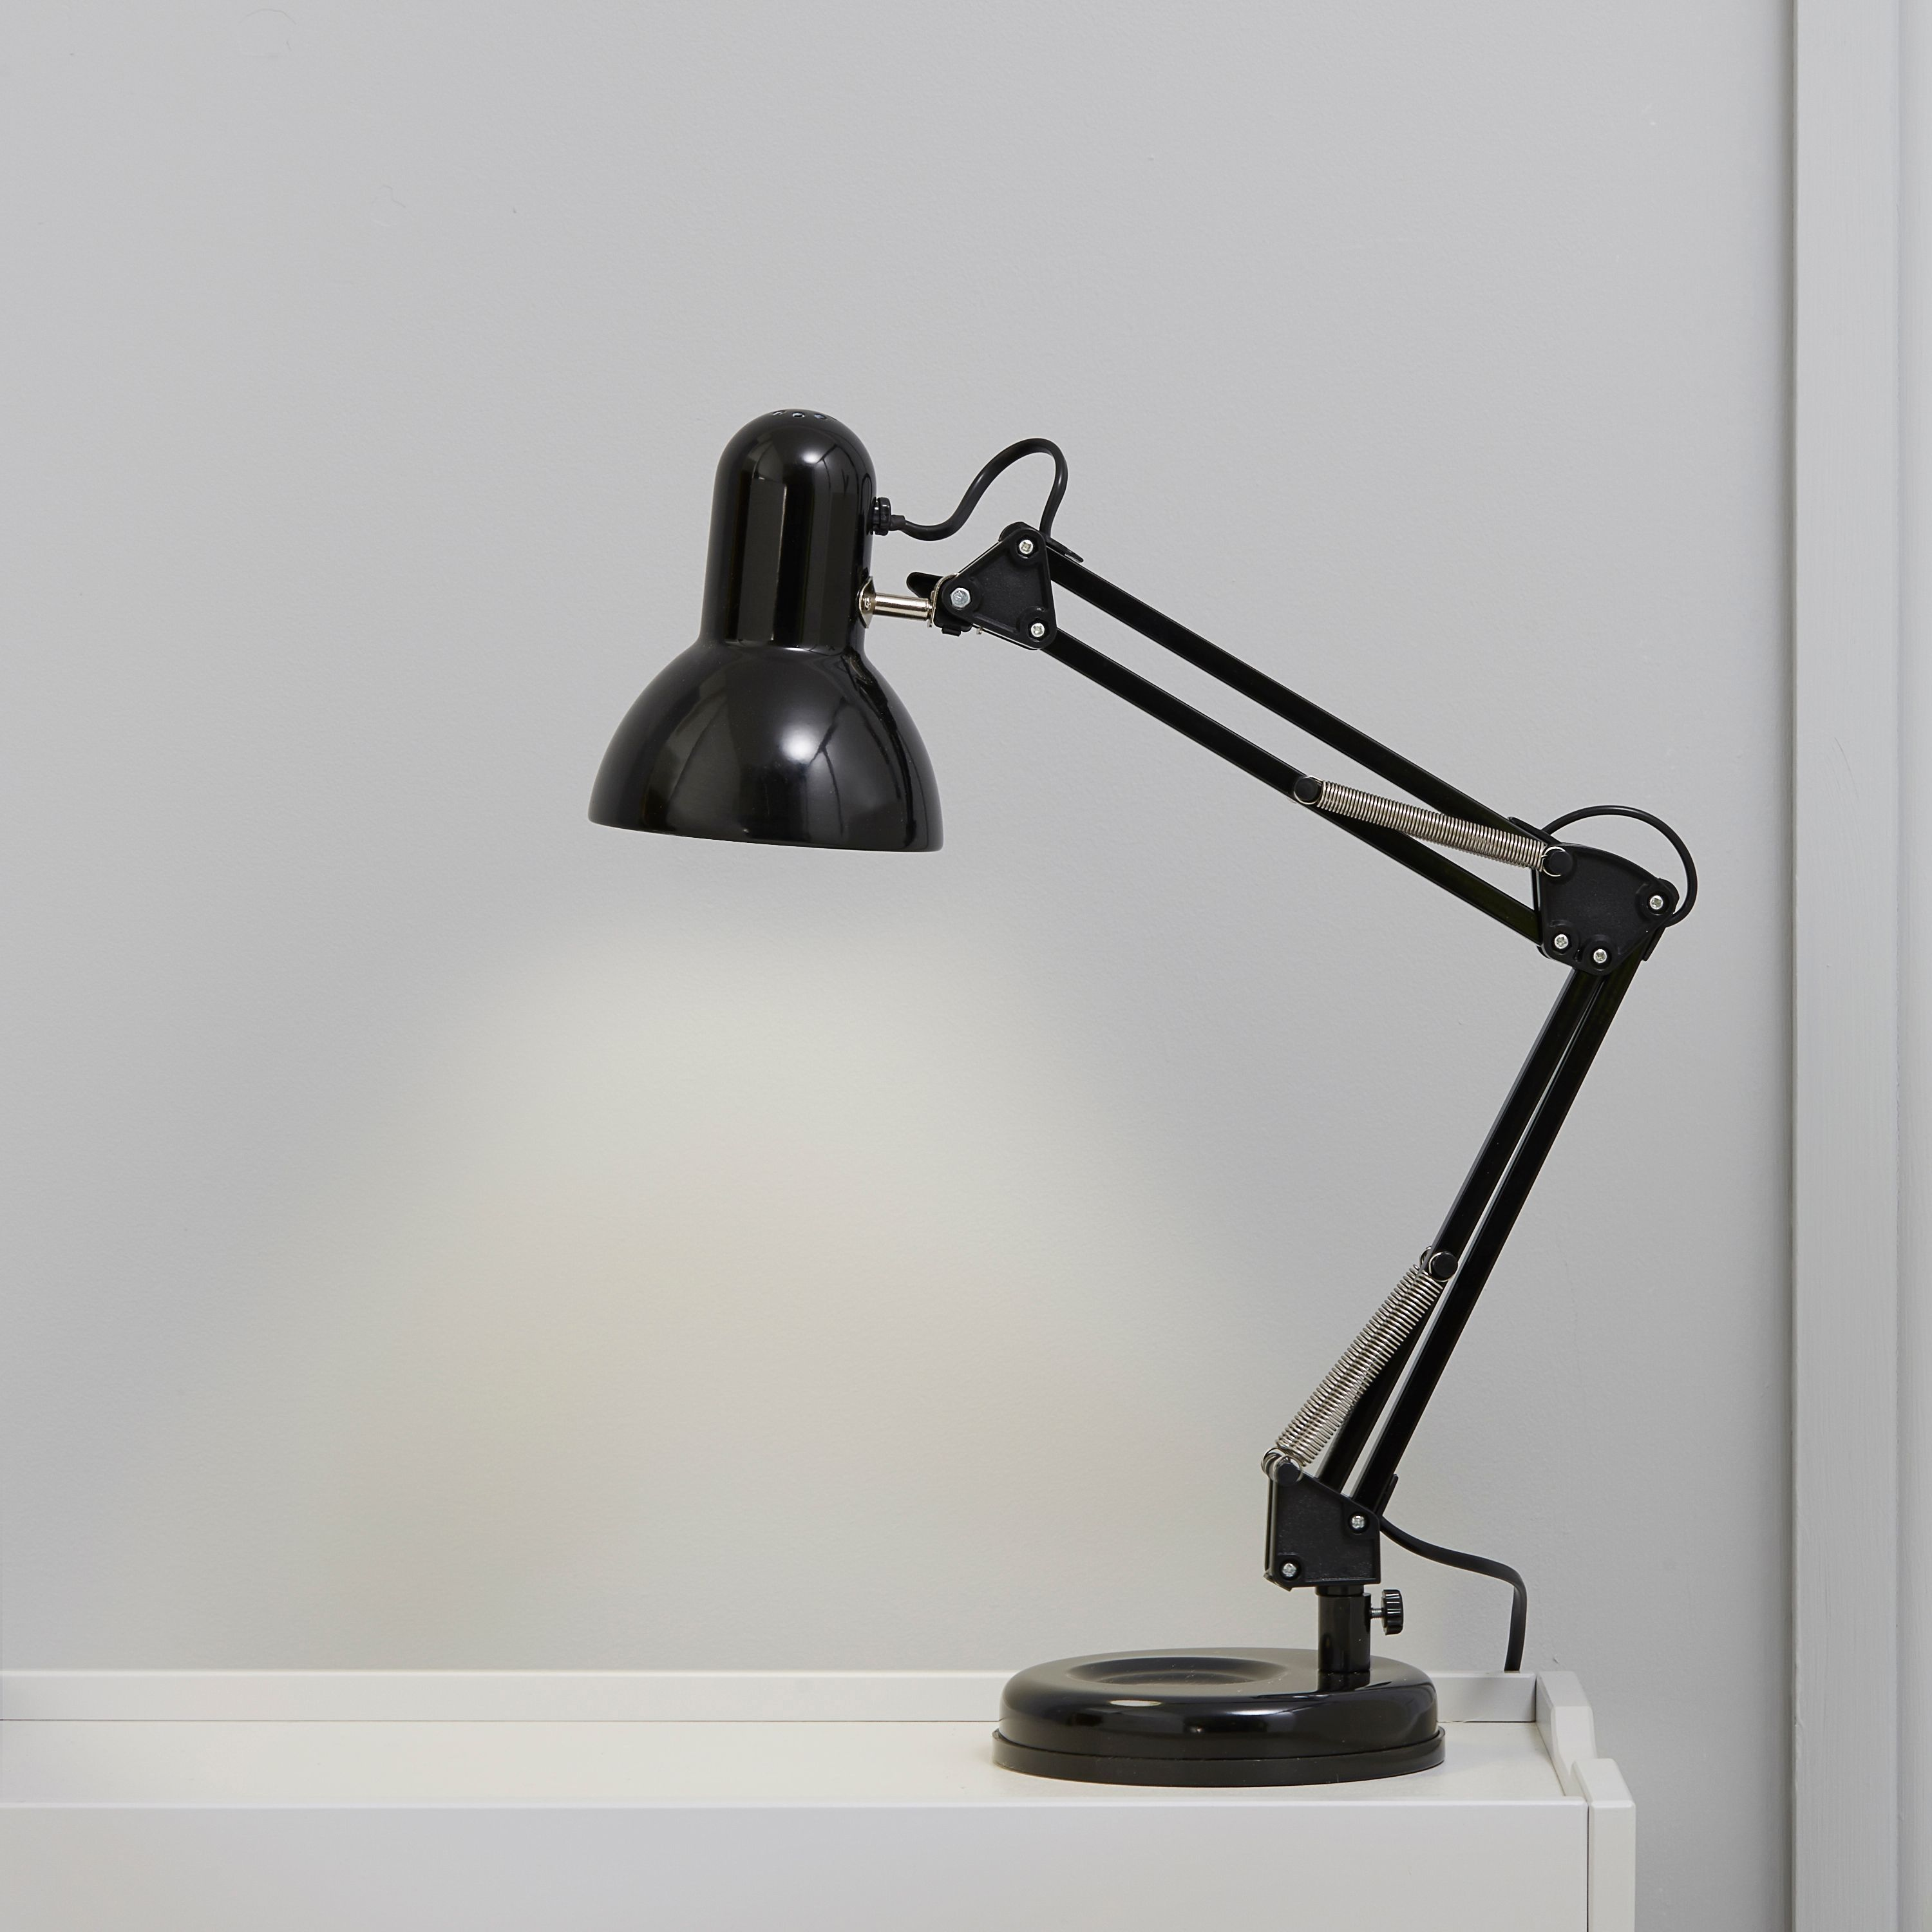 Adjustable Black Desk Lamp | Black desk lamps, Black desk and Desk ...